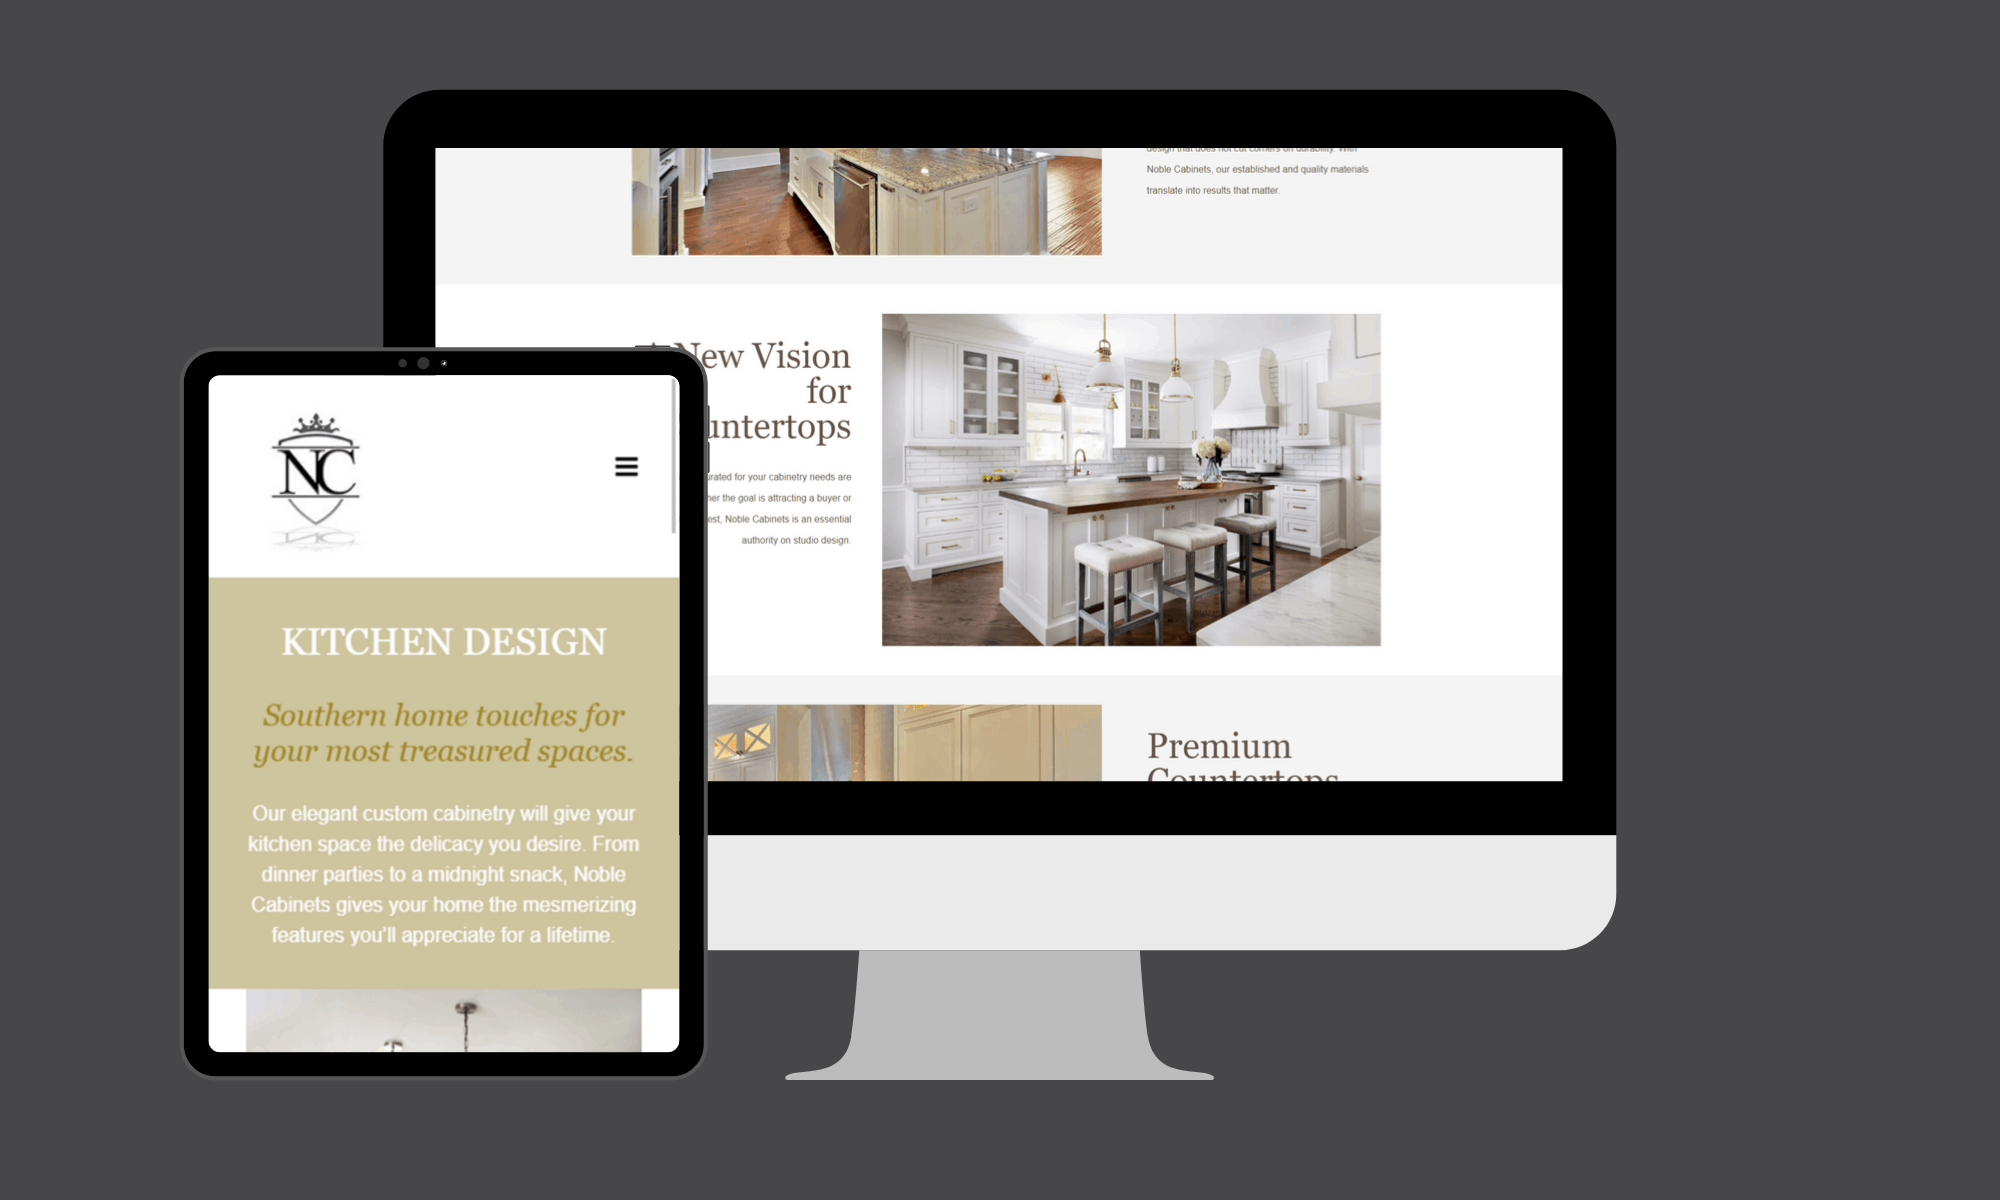 Modern Day Digital provided the web design and search engine optimization services for this custom cabinet company.